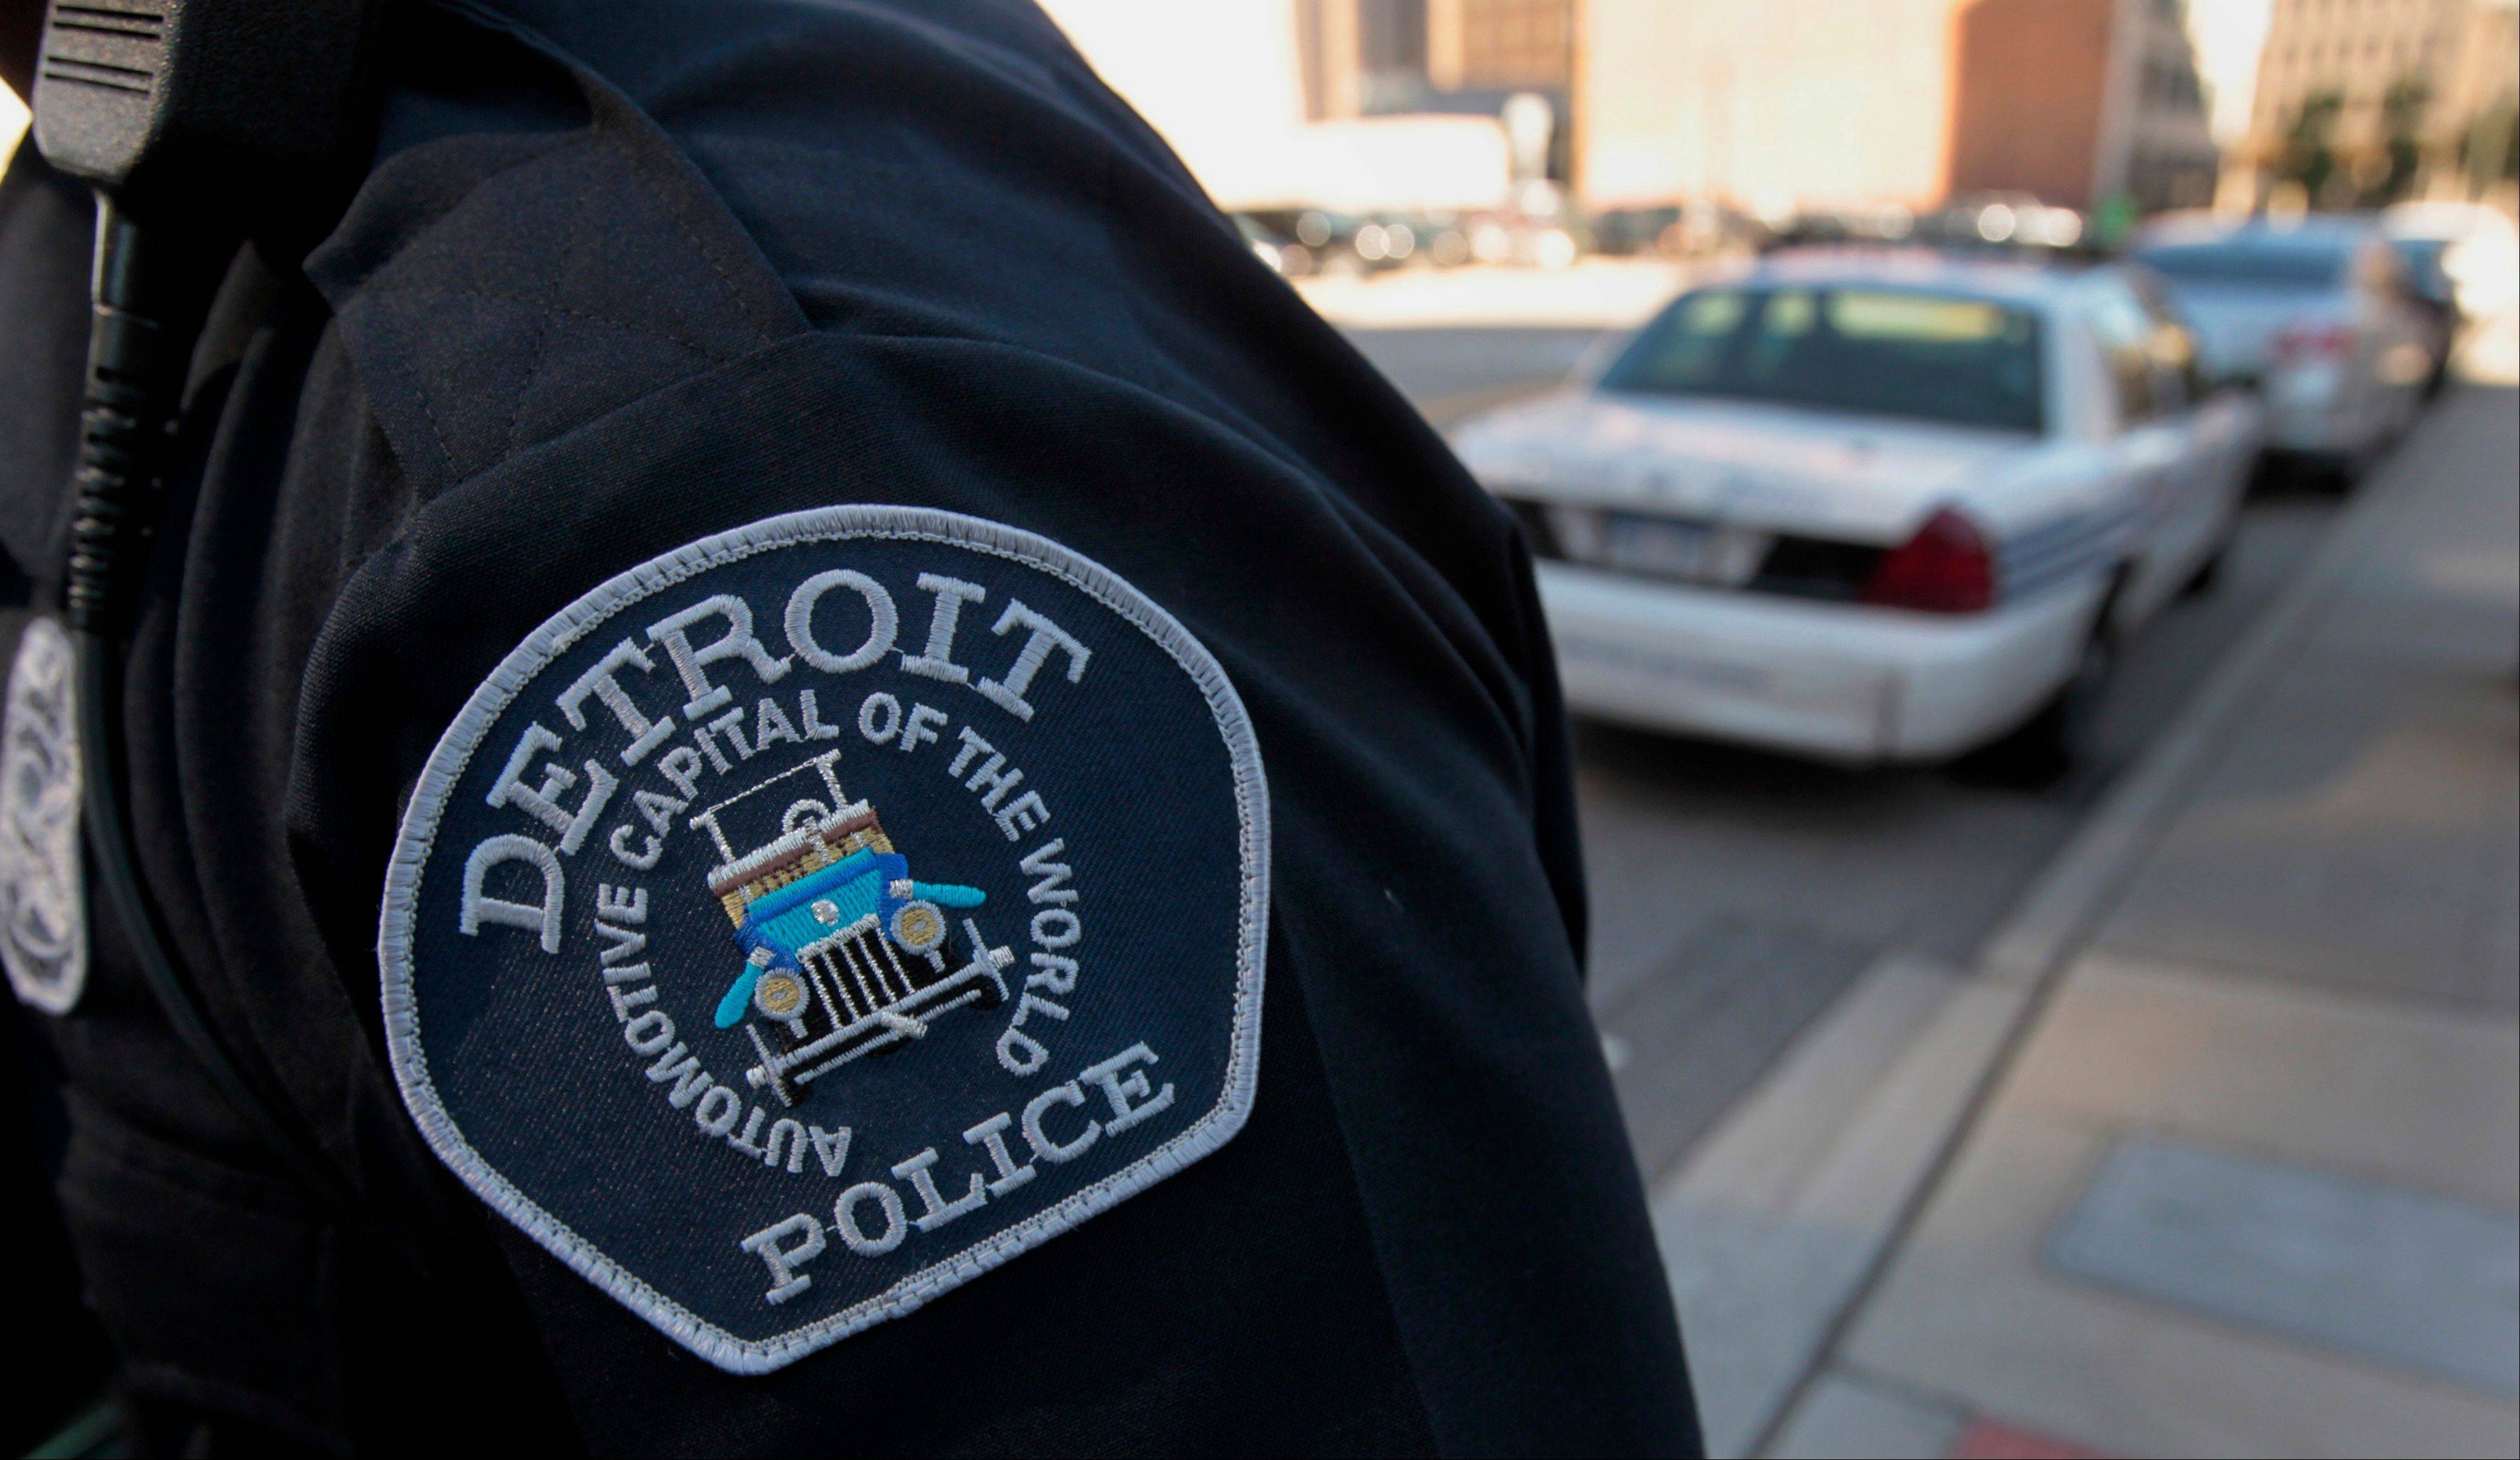 The emblem for the Detroit Police Department is seen on the sleeve of an officer Wednesday outside of the Theodore Levin U.S. Courthouse in Detroit. Detroit began its first court hearing after filing the biggest U.S. municipal bankruptcy. The city plans to seek a court order barring lawsuits against Michigan Governor Rick Snyder that are related to the case.